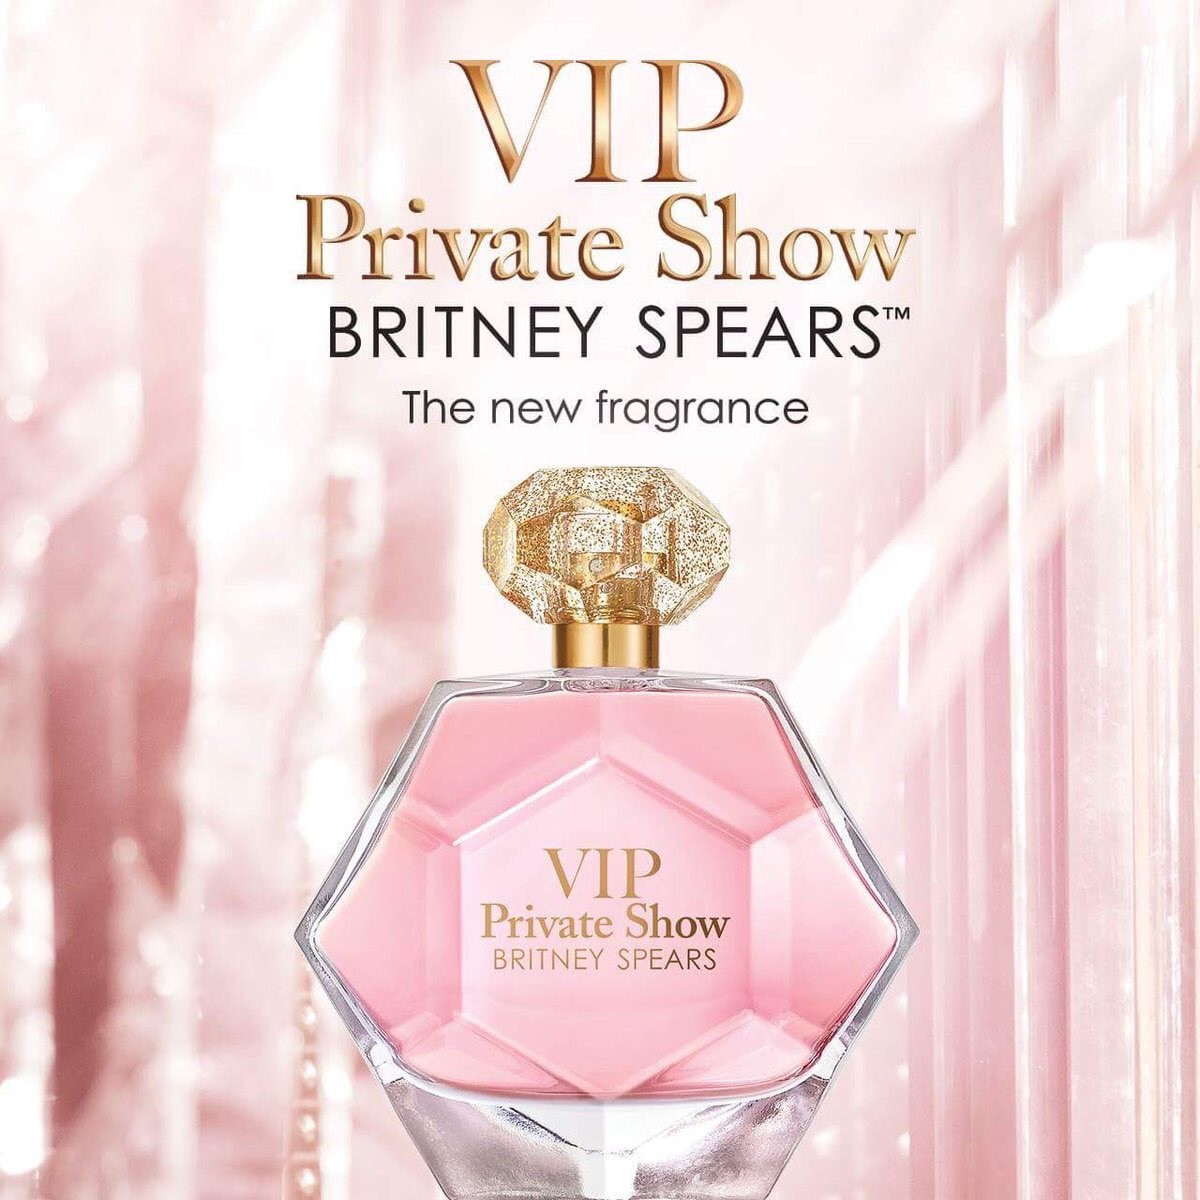 Изображение 3 VIP Private Show Britney Spears